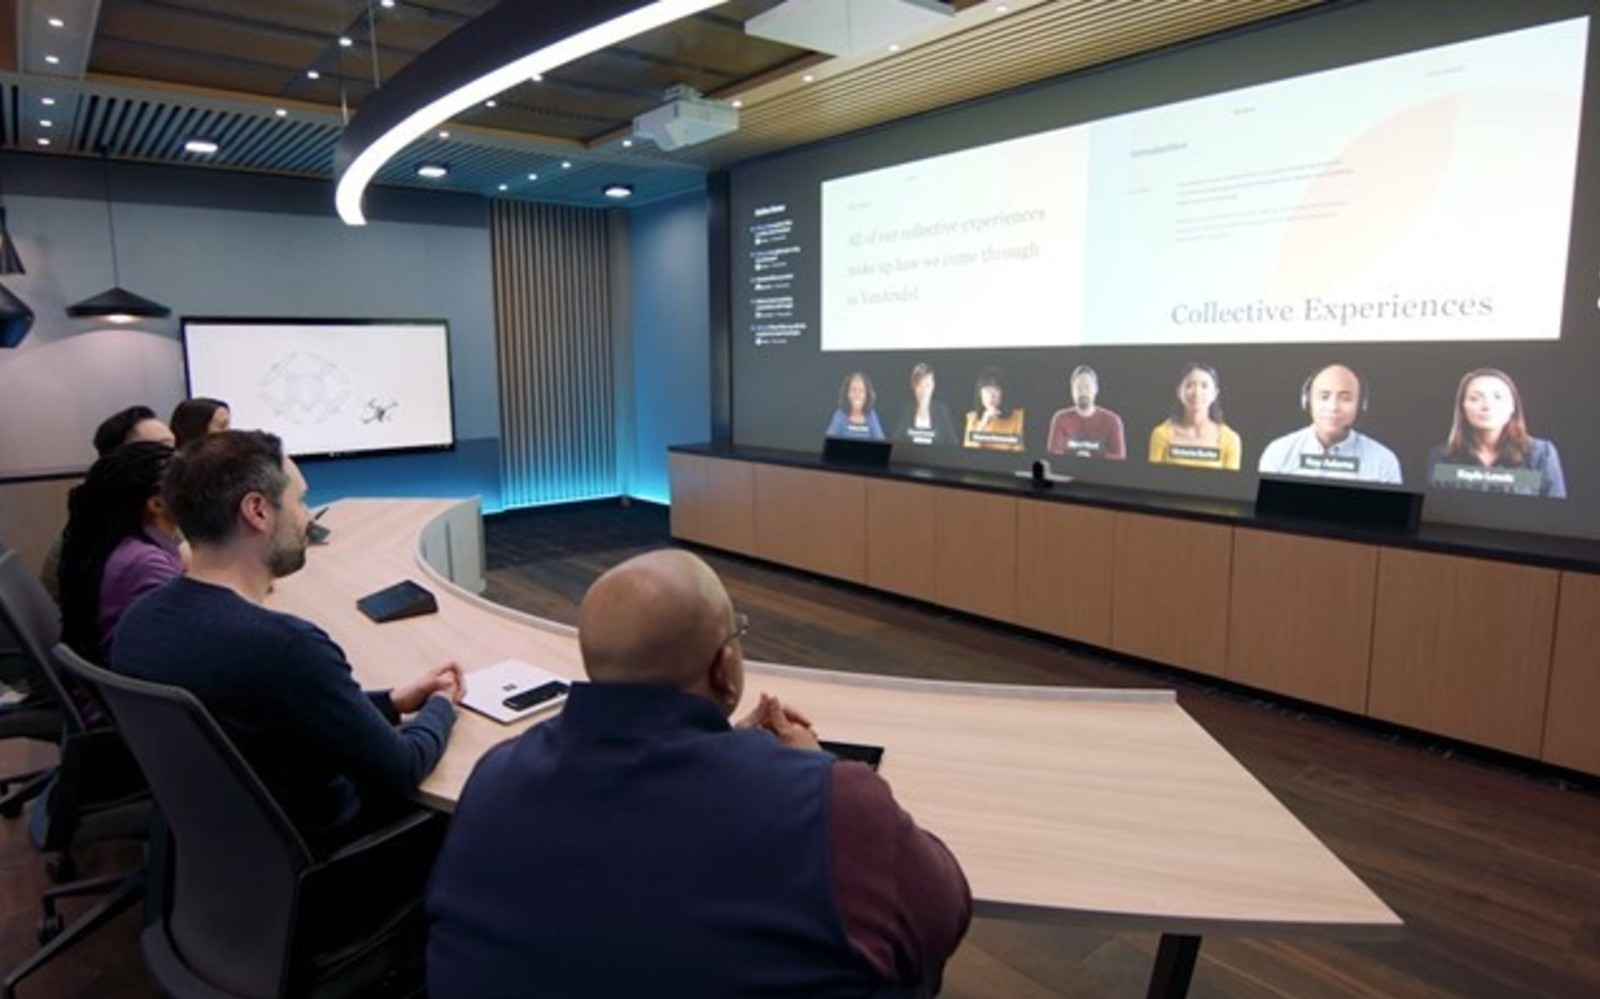 Microsoft's plan to improve meeting rooms includes larger displays and spatial audio